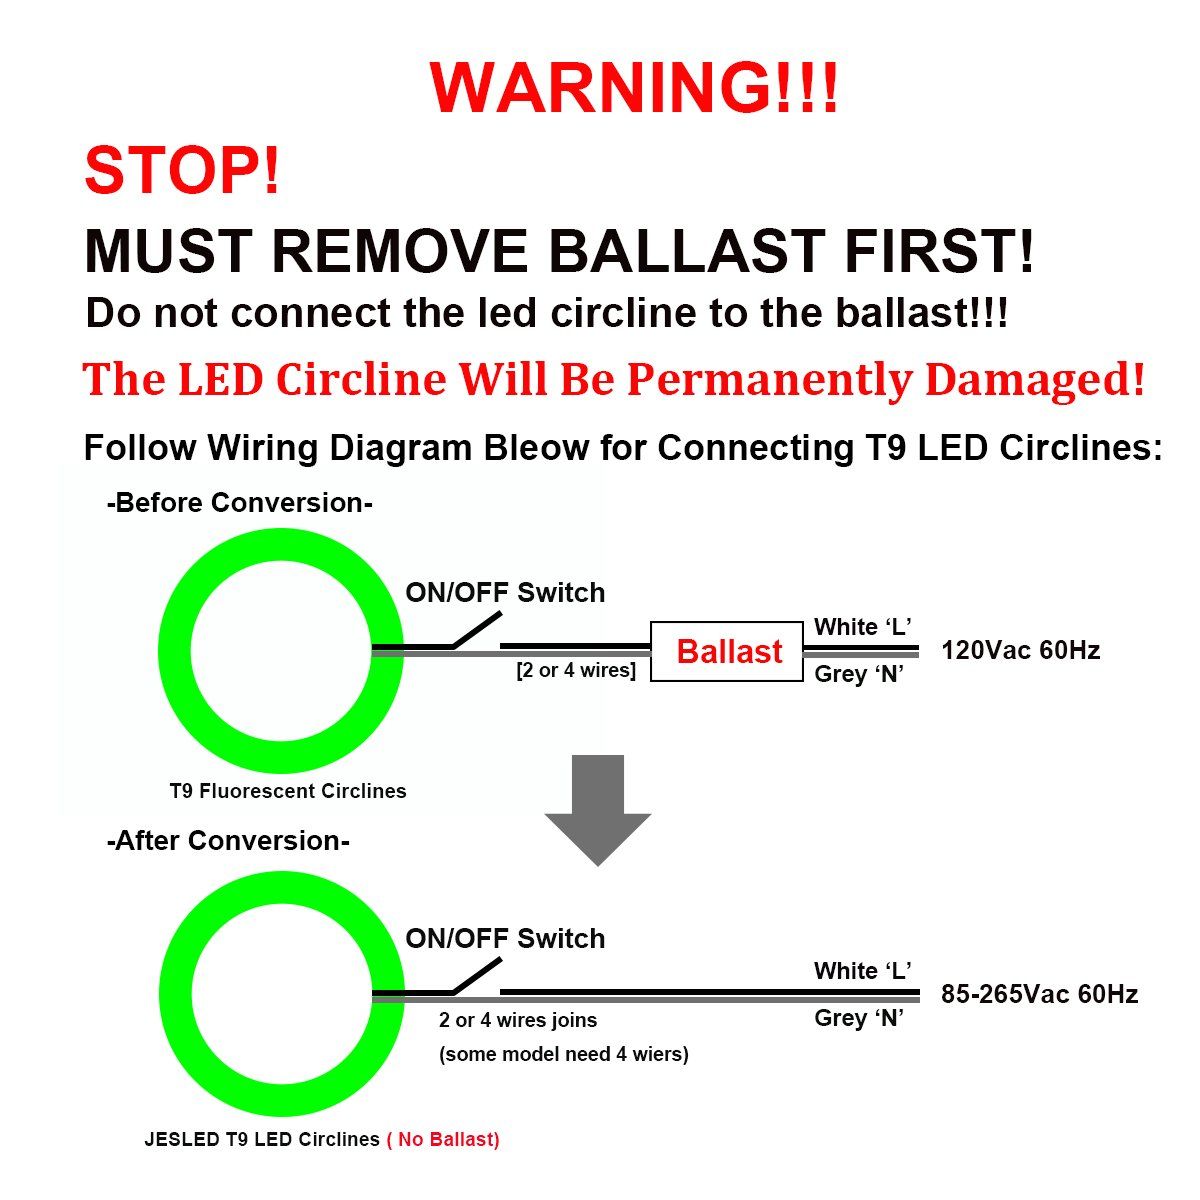 Circline Wiring Diagram Data Advance Ballast T12ho 9 Inch 12w Ls T9 Led Light Bulb Daylight 6000k Replacement Simple Diagrams